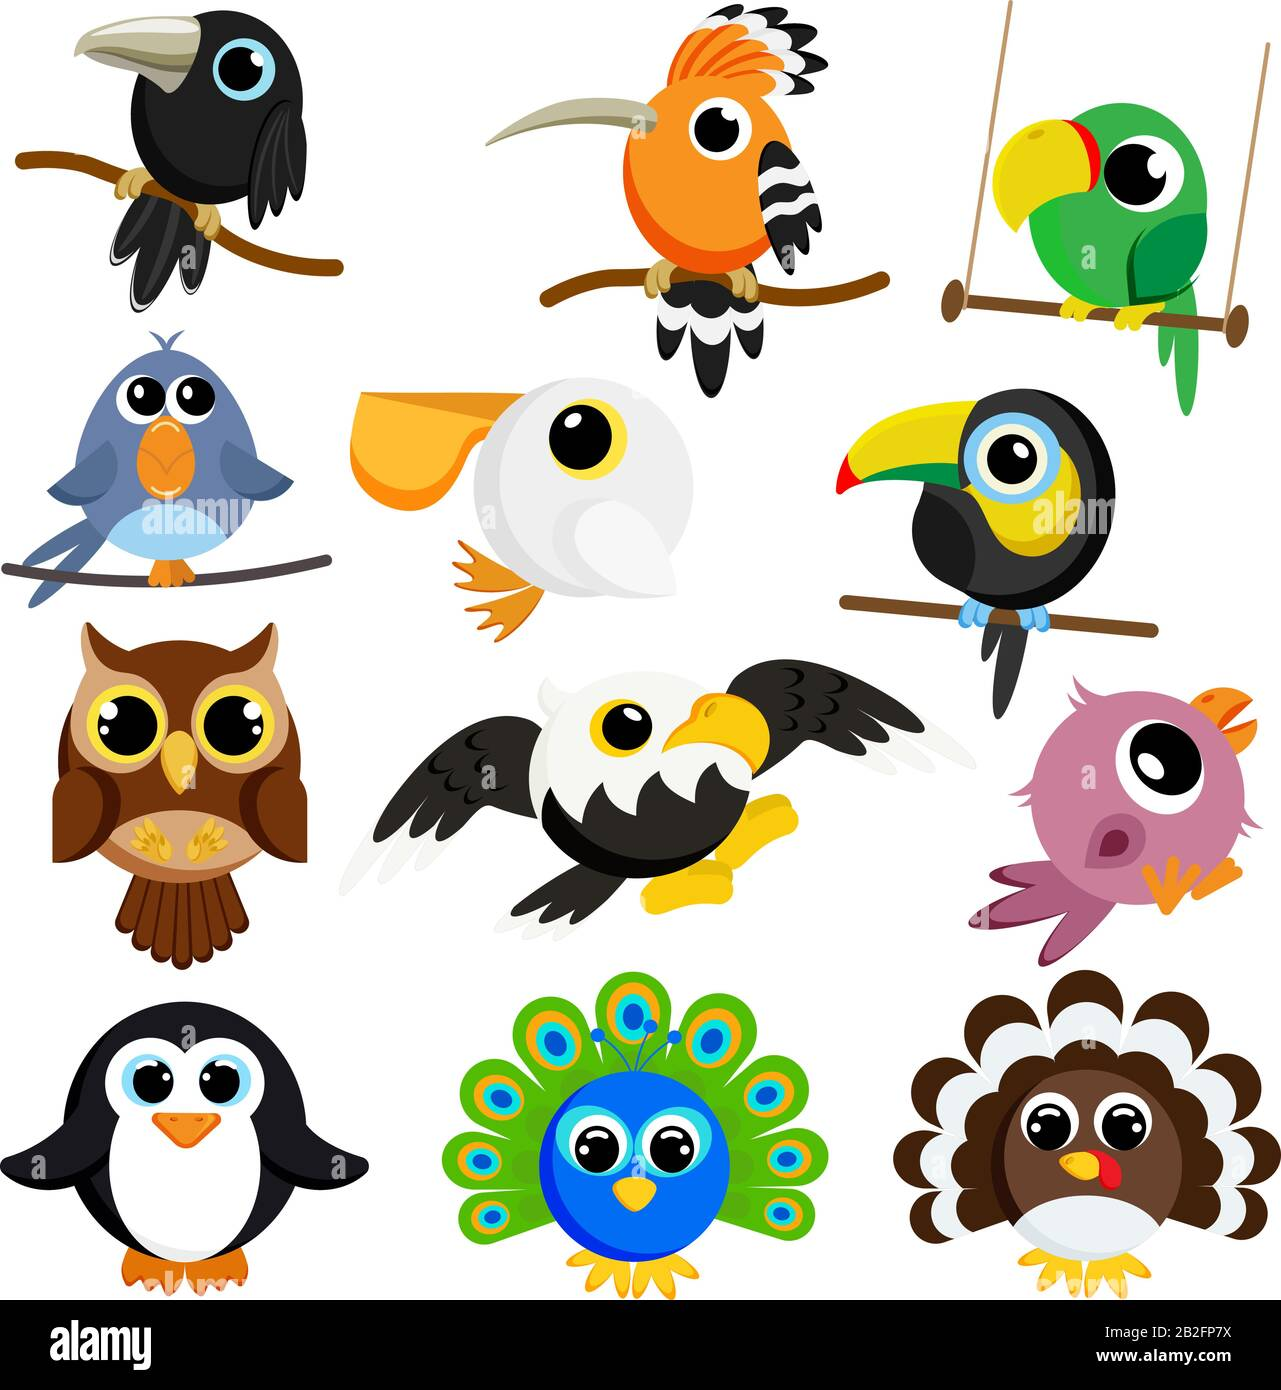 Cute Birds Set Vector Image Cartoon Characters Flat Vector Stock Illustration On White Background Stock Vector Image Art Alamy